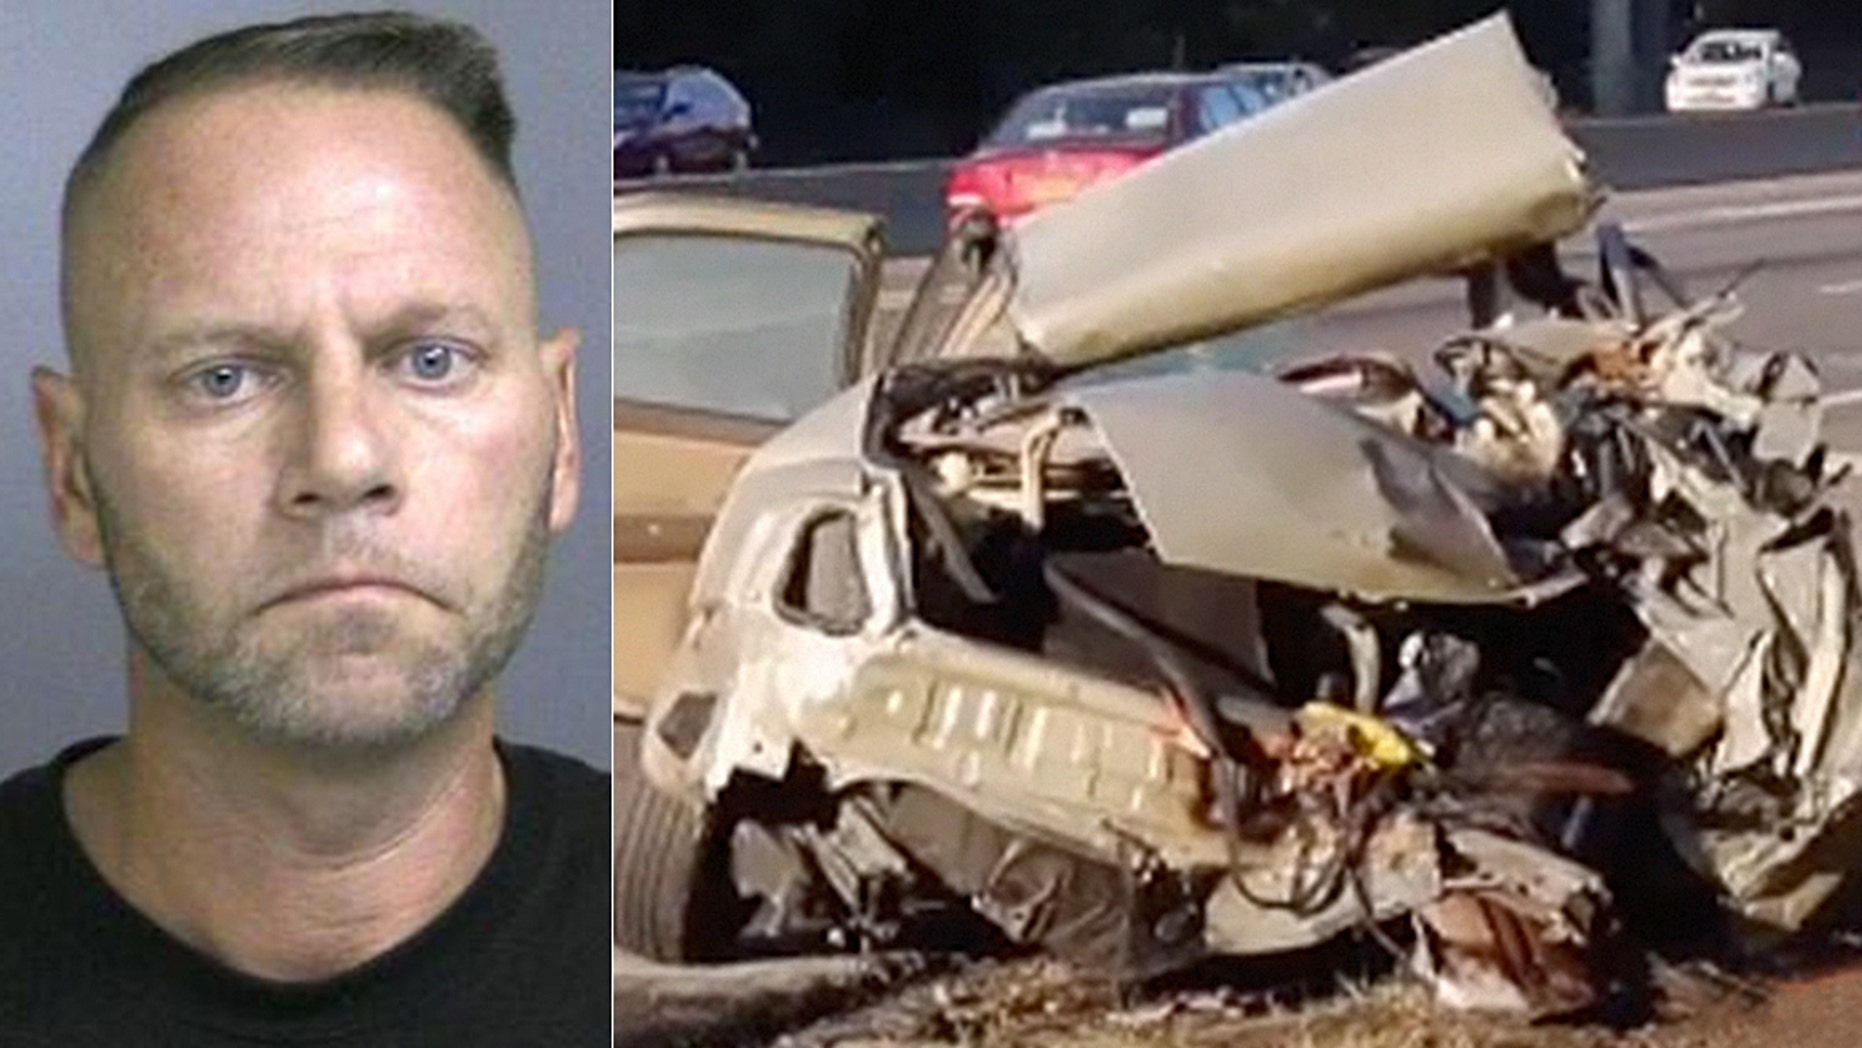 Brian Sinclair was driving a crane involved in a multiple vehicle accident on the Long Island Expressway on Tuesday.